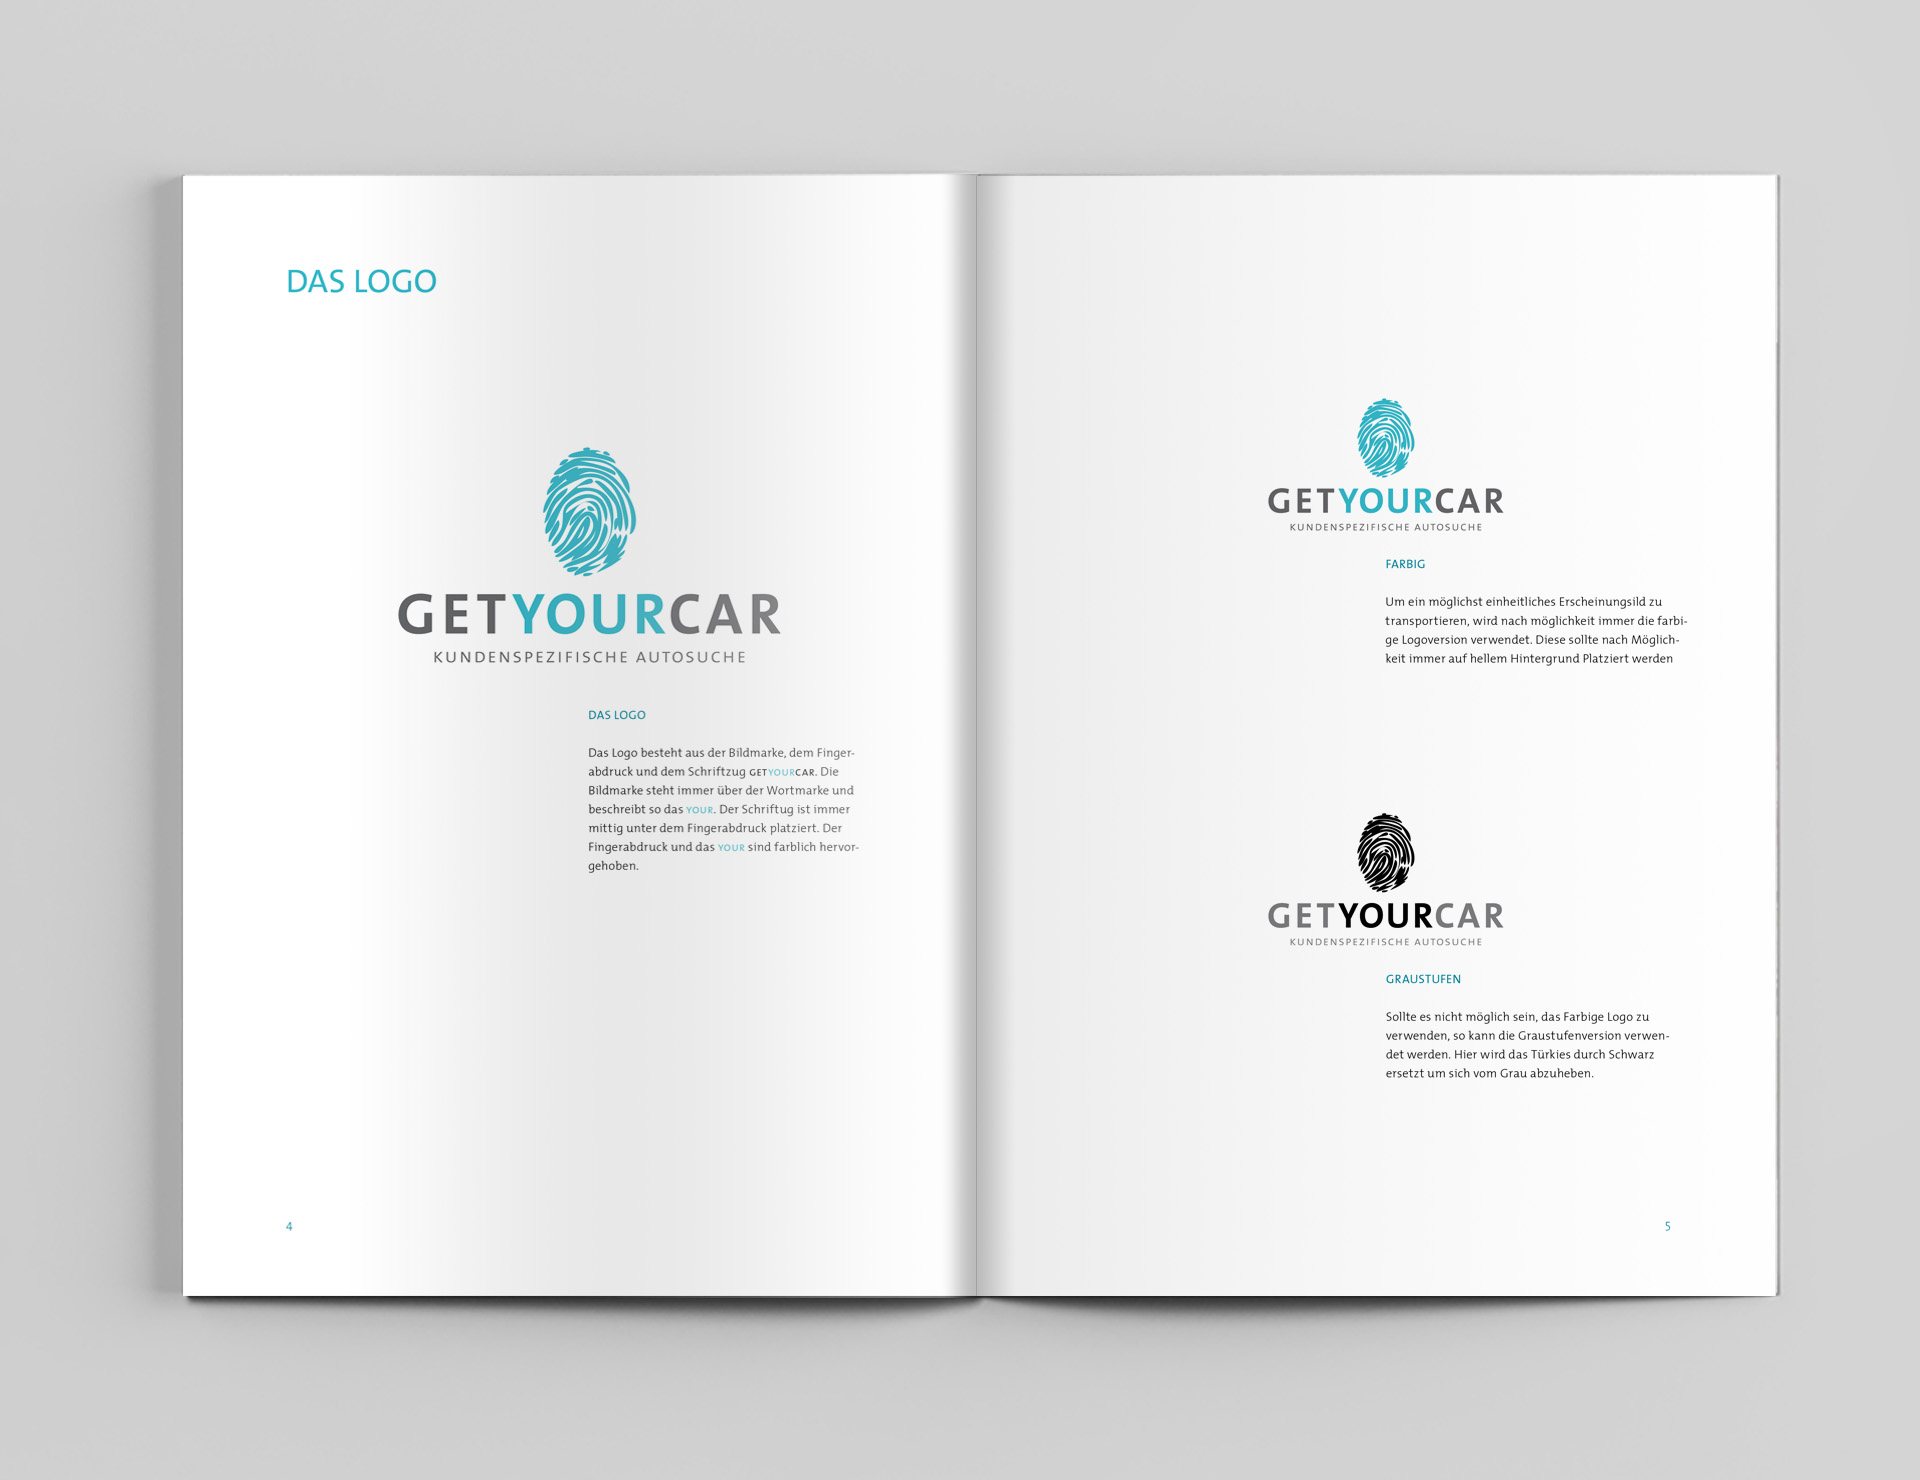 Corporate-Design, Design, Layout, Konzept, Autosuche, Get Your Car, Münster, Grafik, Auto, Bennet Grüttner